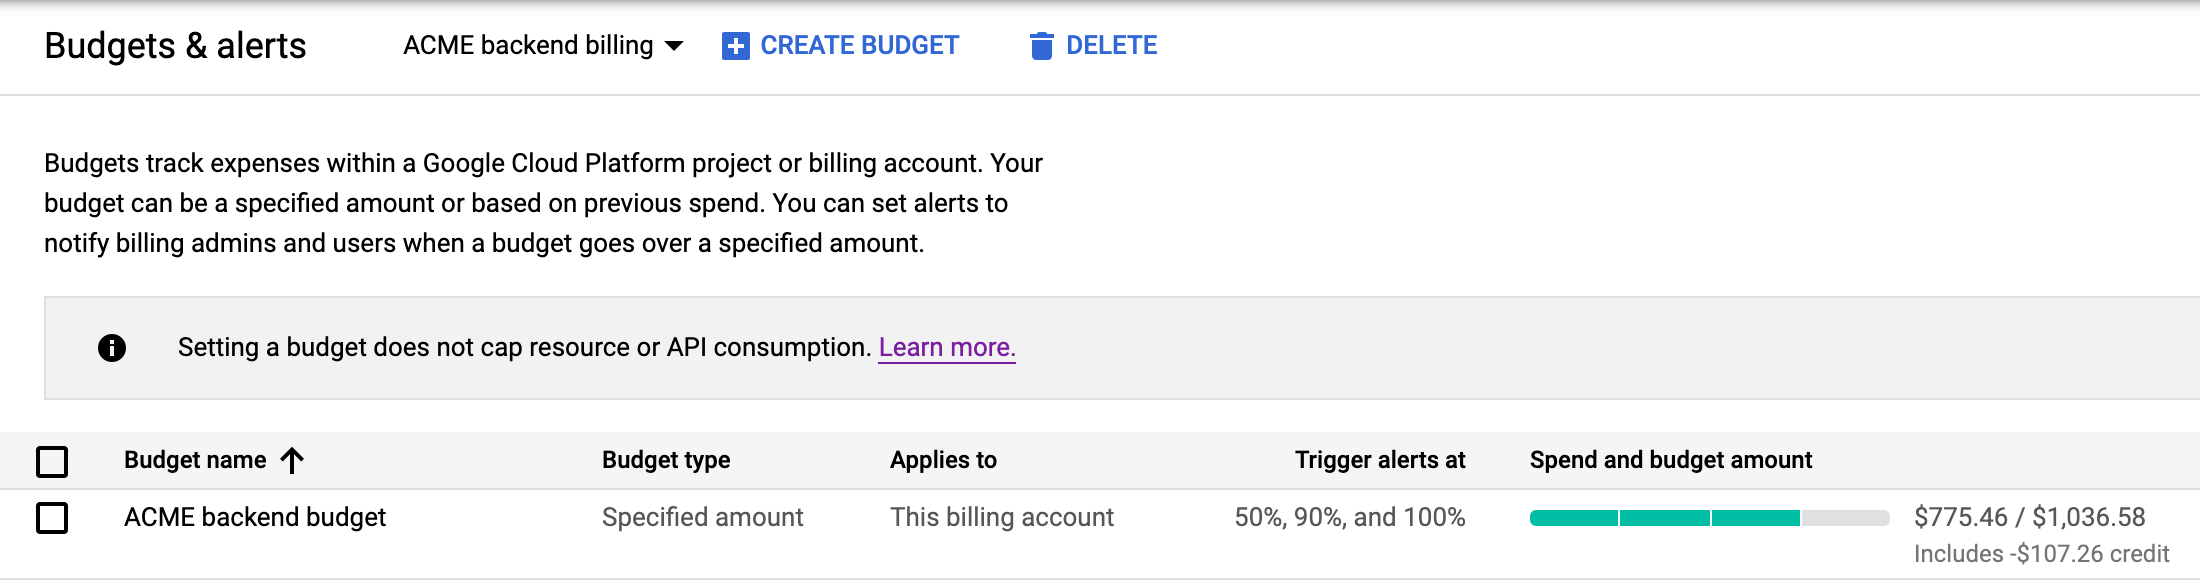 Manage billing alerts in the GCP console